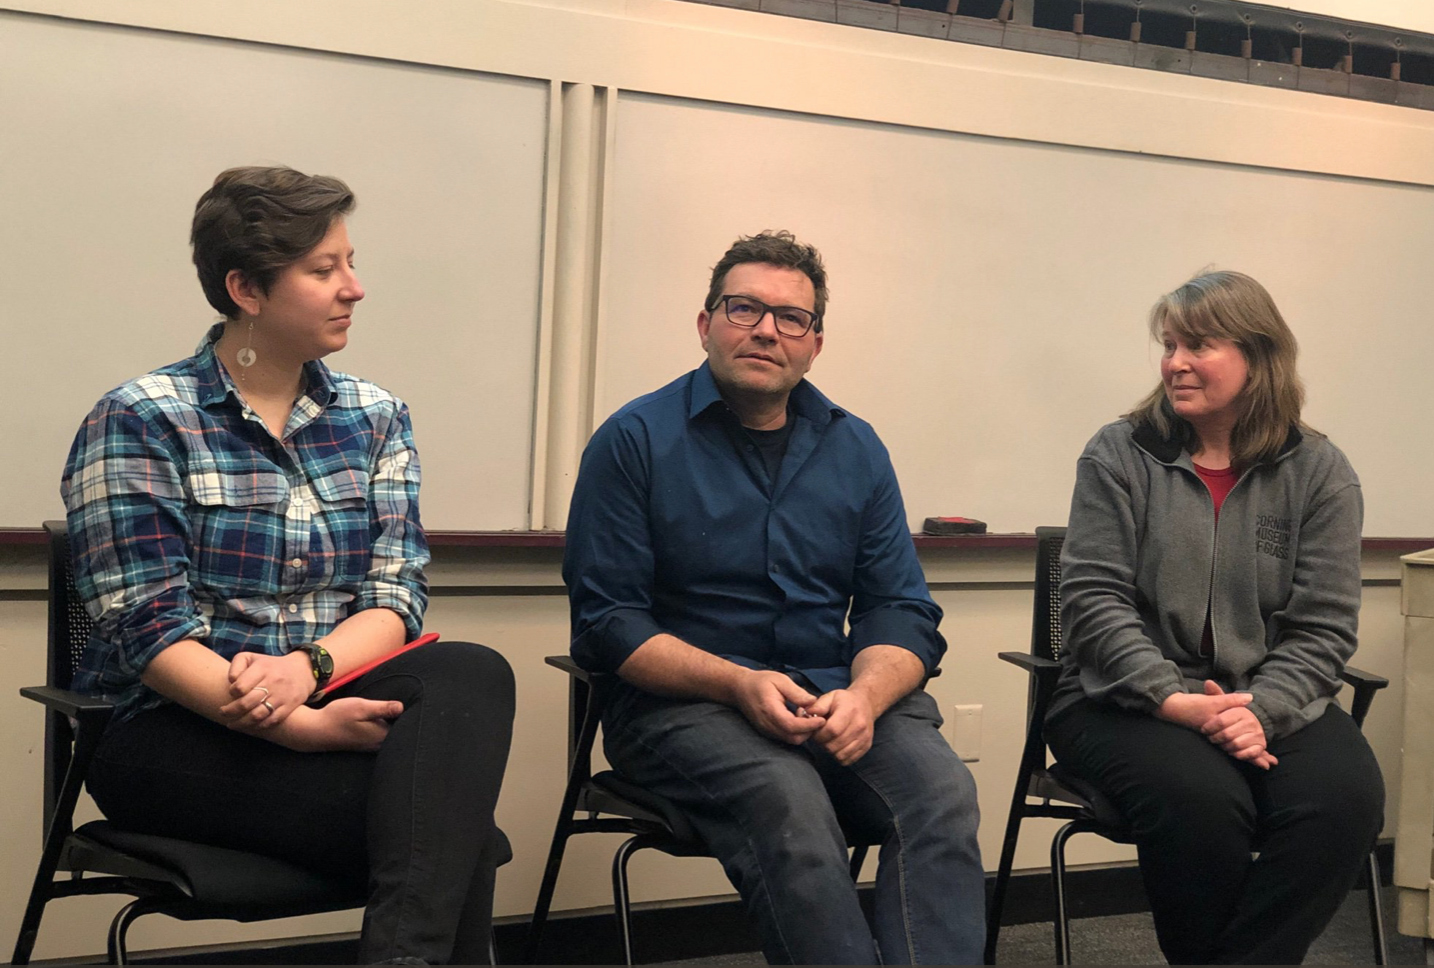 Caitlin McDonough (Biology), Sam Van Aken (Studio Arts), and Sally Ann Prasch (Chemistry) discussing how either art is incorporated into their Biology, or Biology is incorporated into their Art.